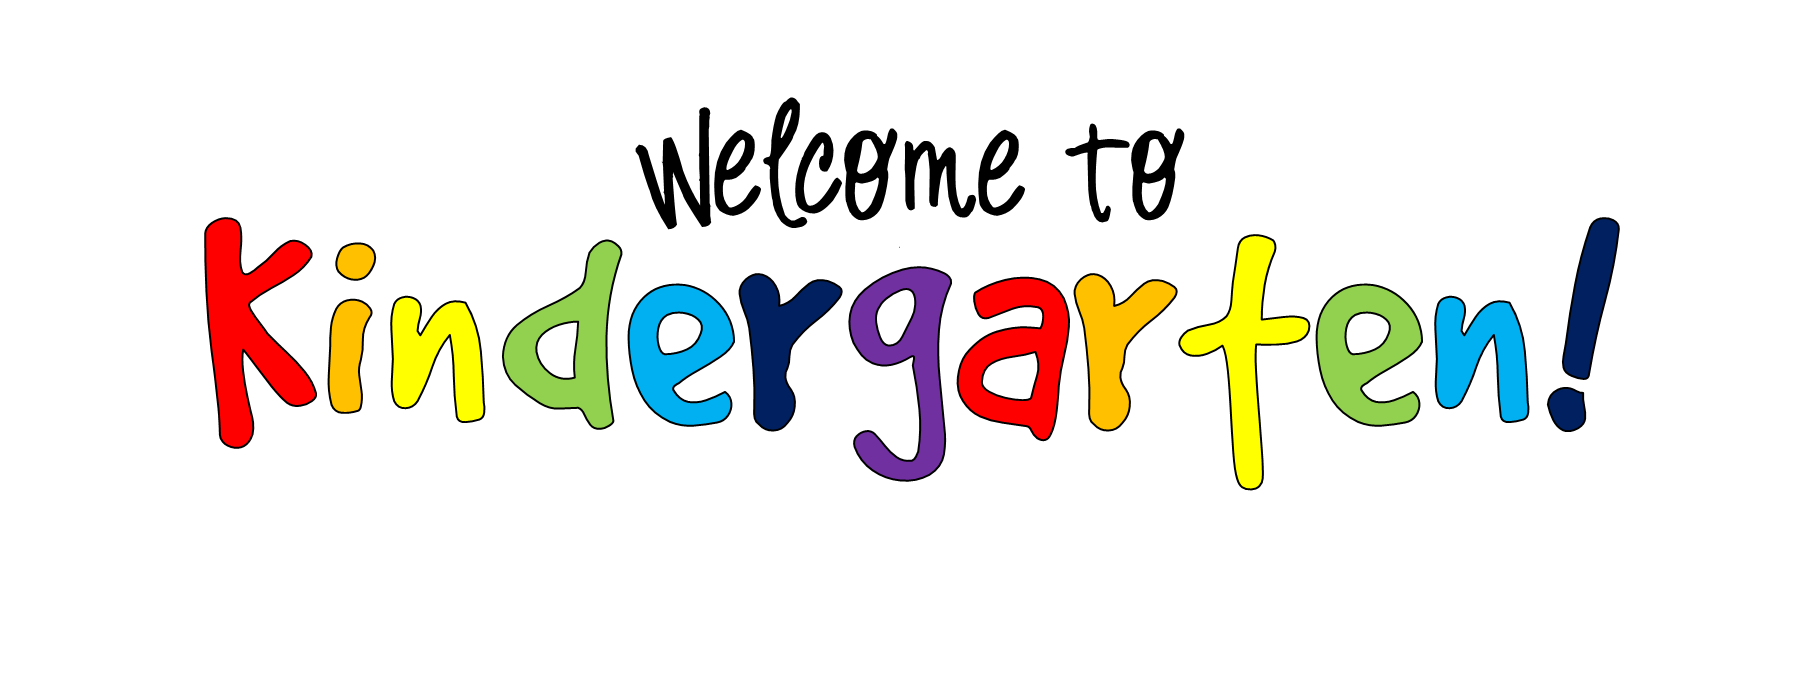 Library clipart kindergarten Pictures Clip Free library library